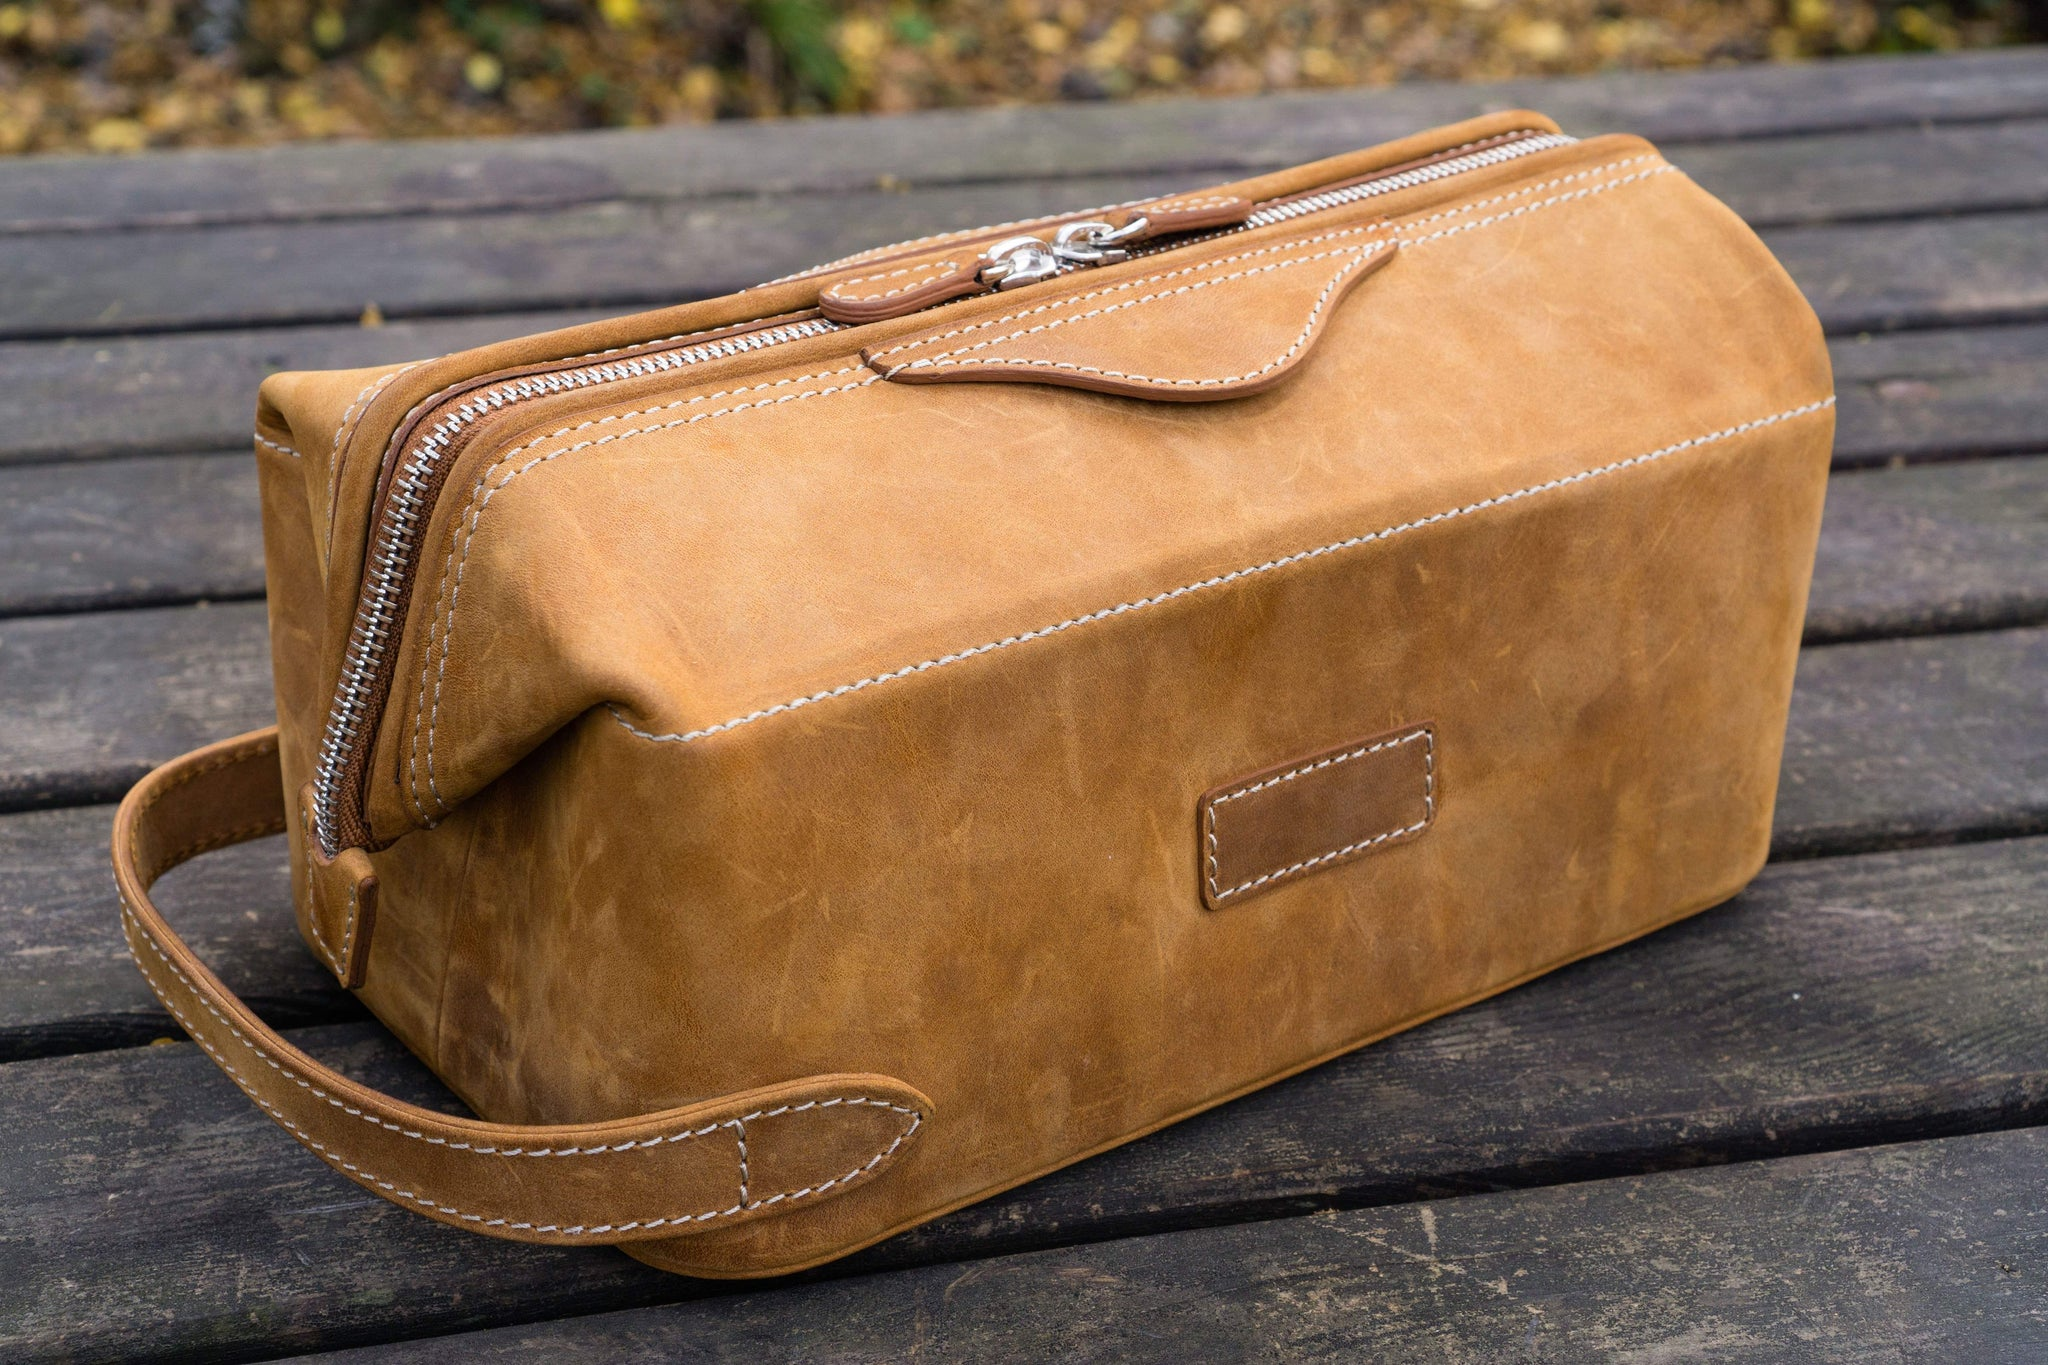 Handmade Leather Dopp Kit - Men s Toiletry Bag - Shop Galen Leather 587ee427e3191